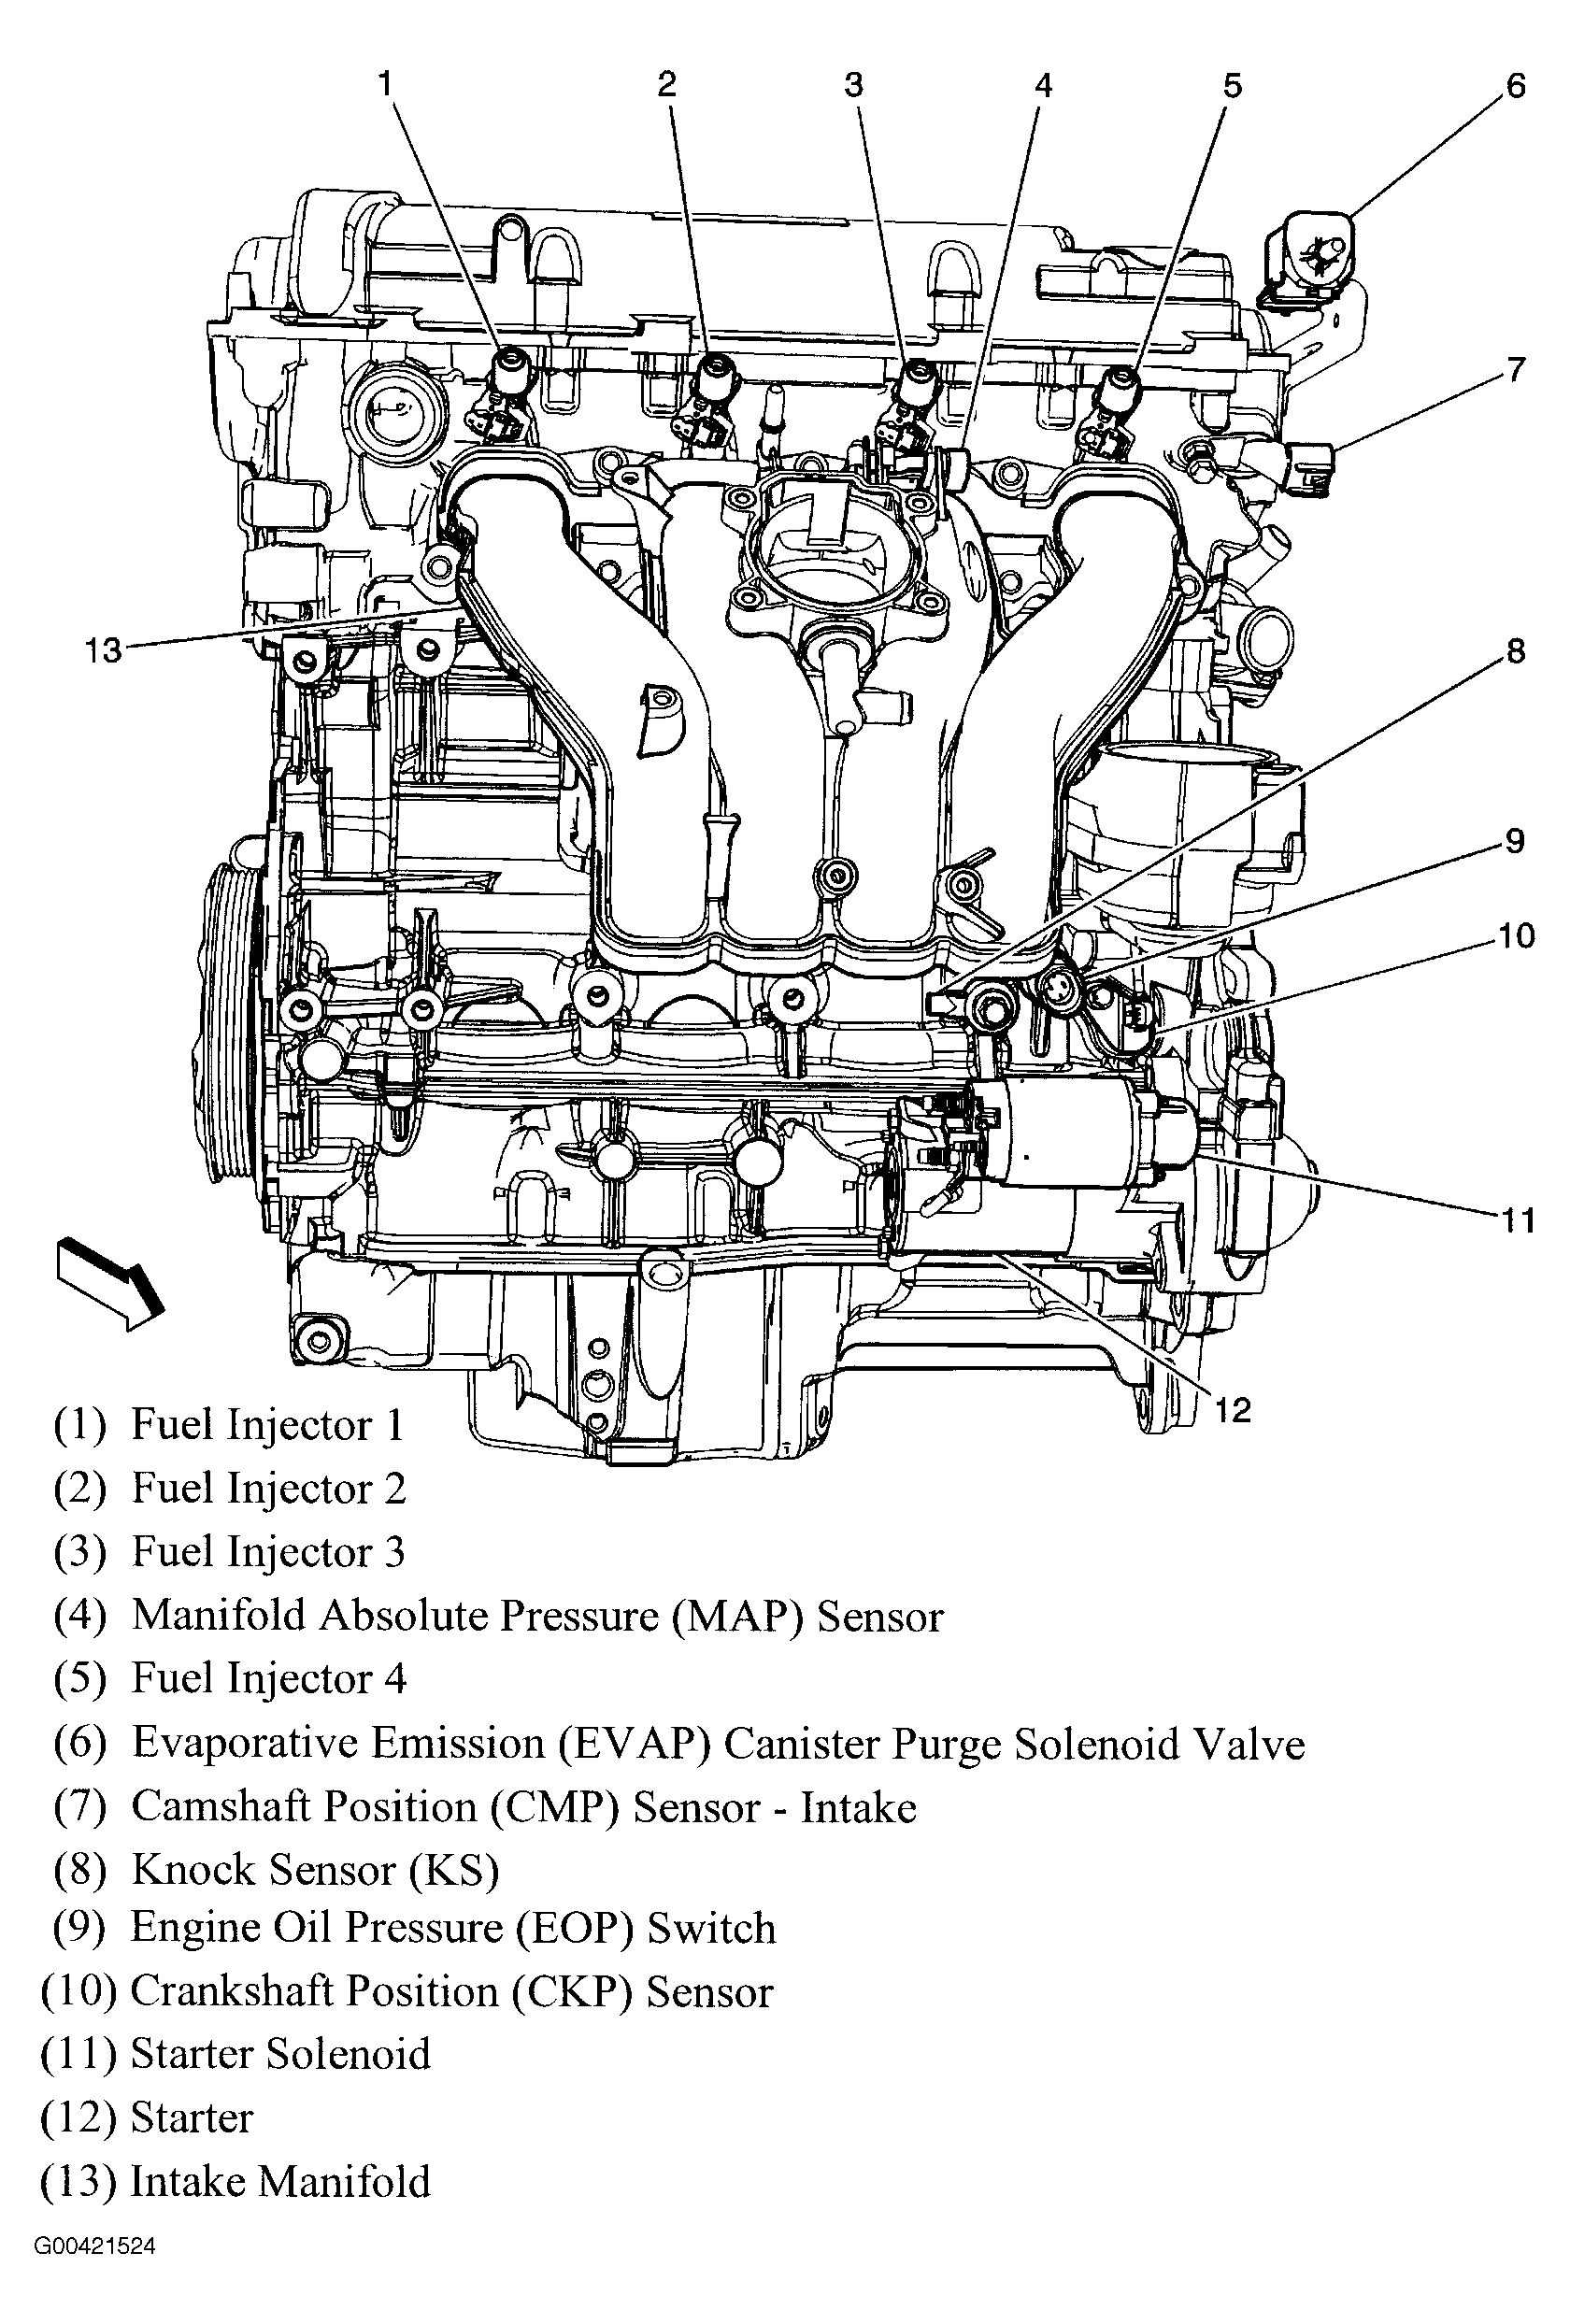 Engine Breakdown Diagram Mazda 2 2l Engine Diagram Wiring Diagram Expert Of Engine Breakdown Diagram Energies Free Full Text